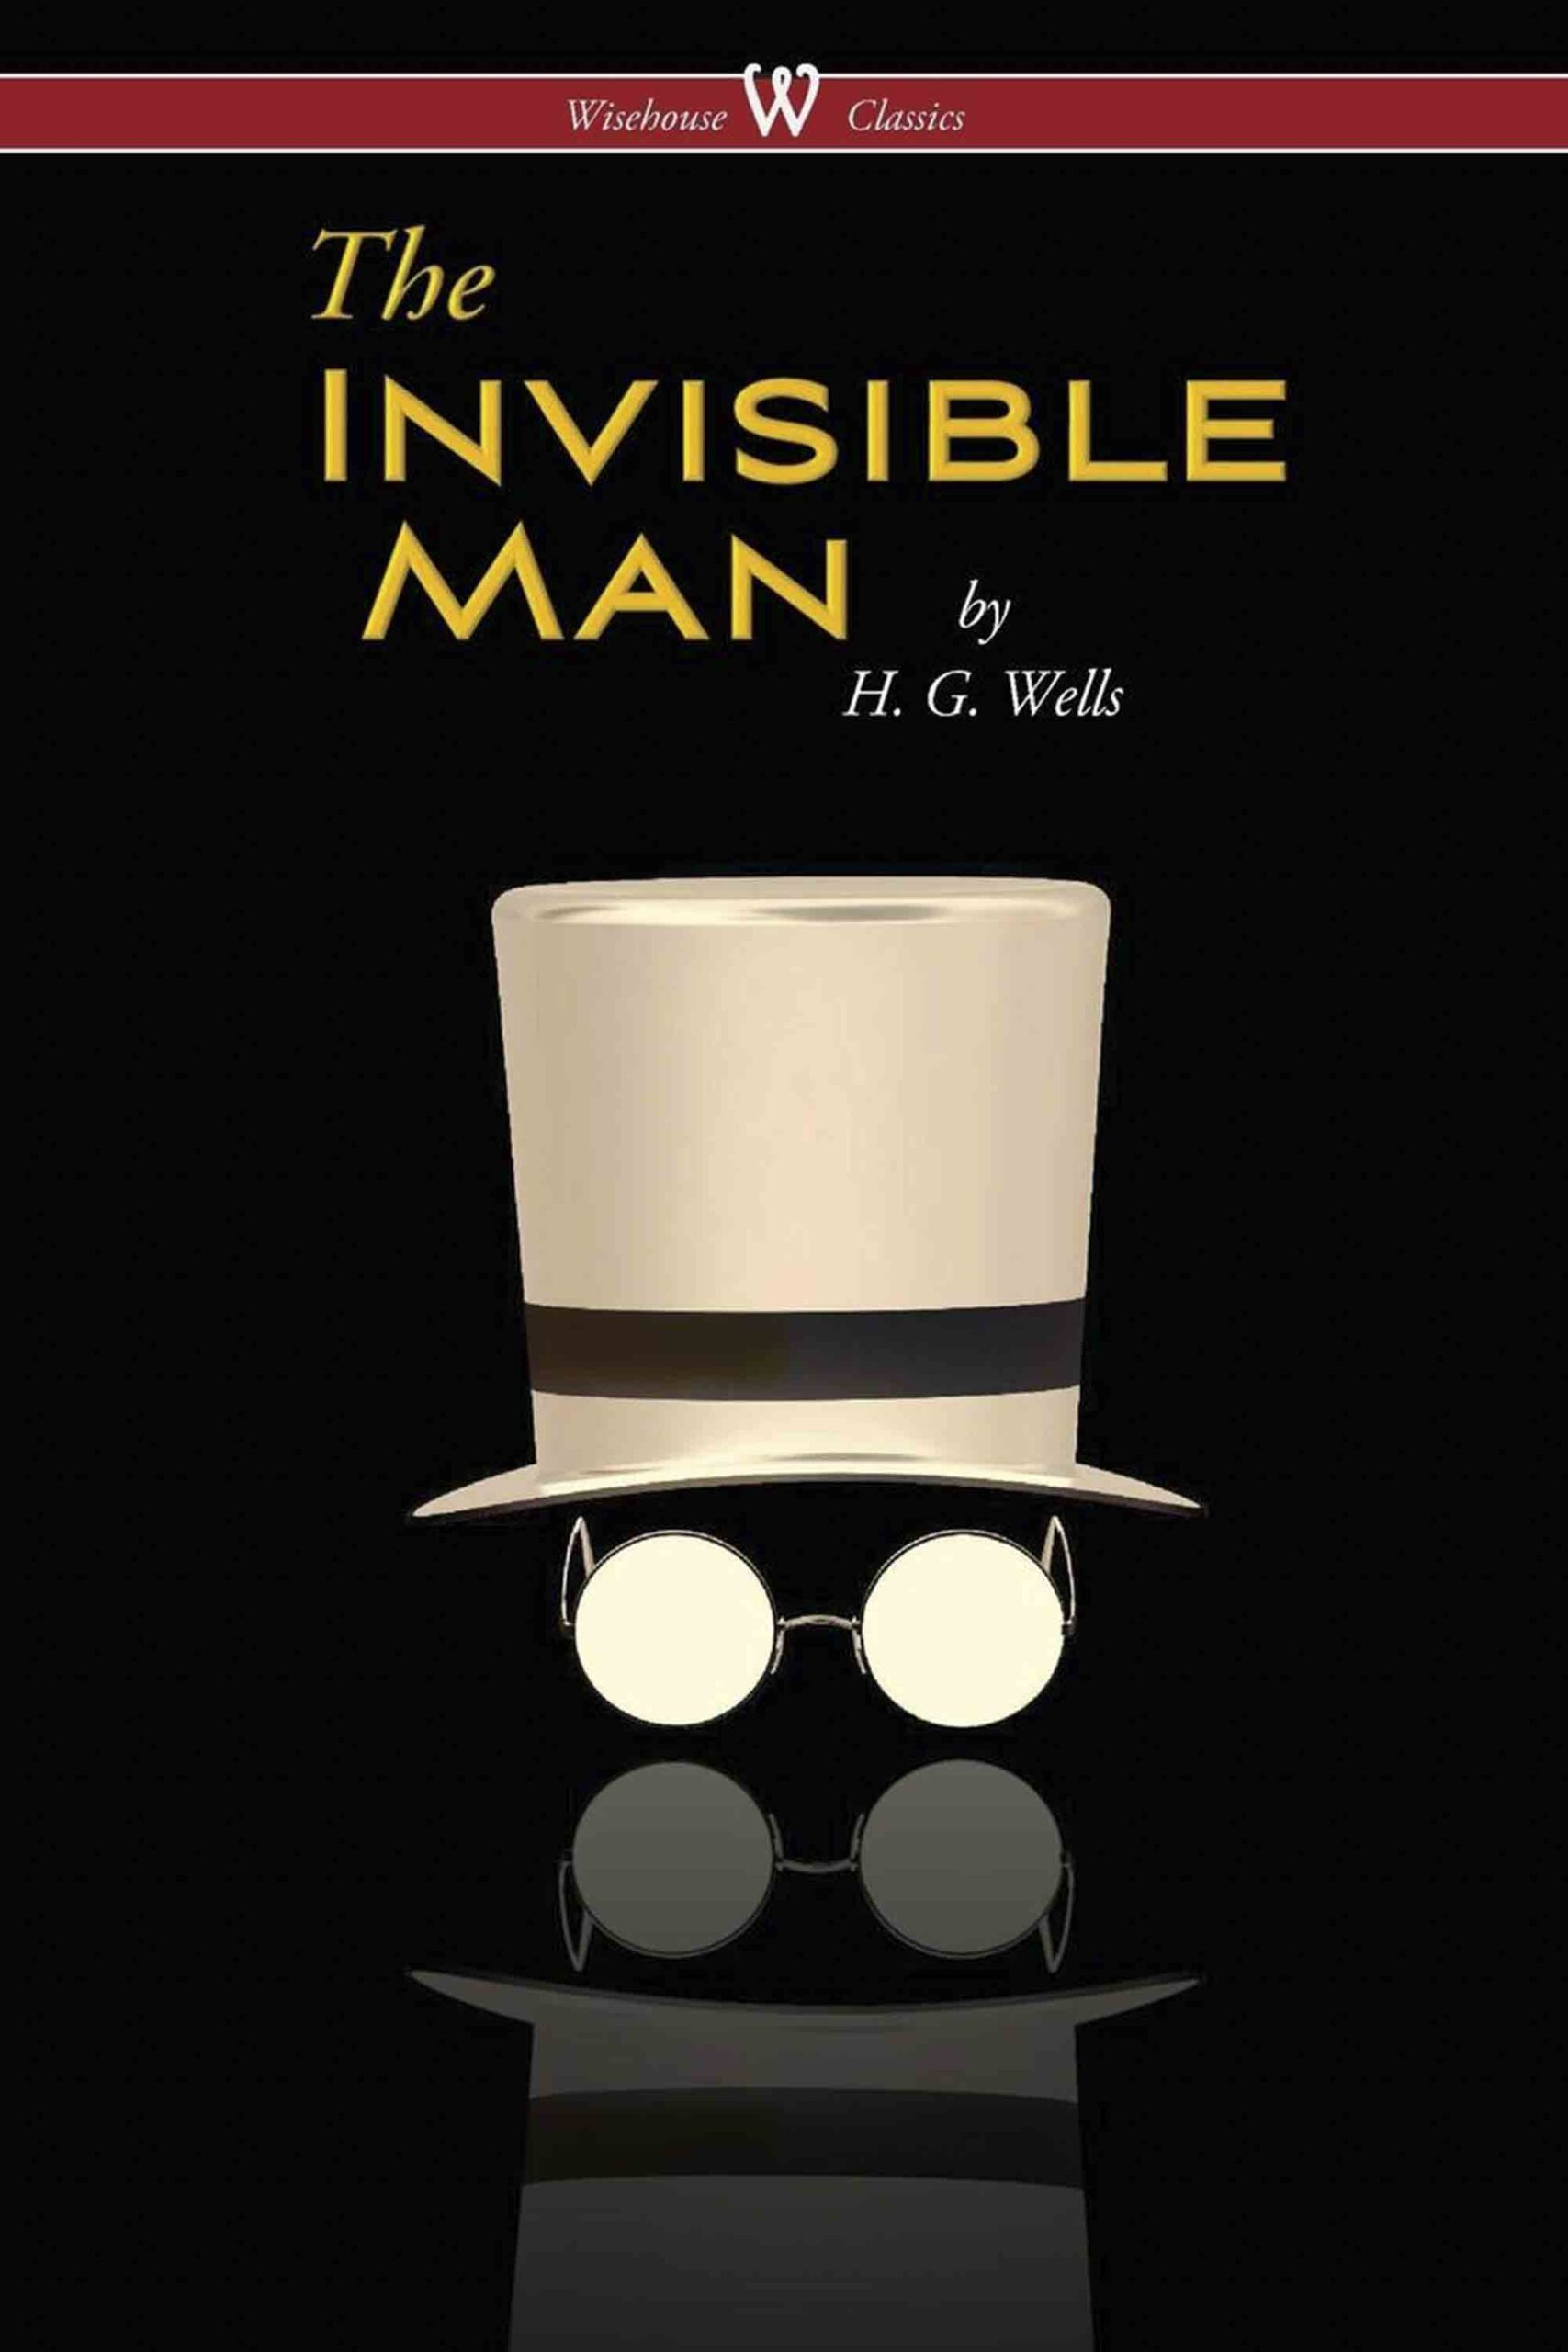 The Invisible Man – A Grotesque Romance (Wisehouse Classics Edition)